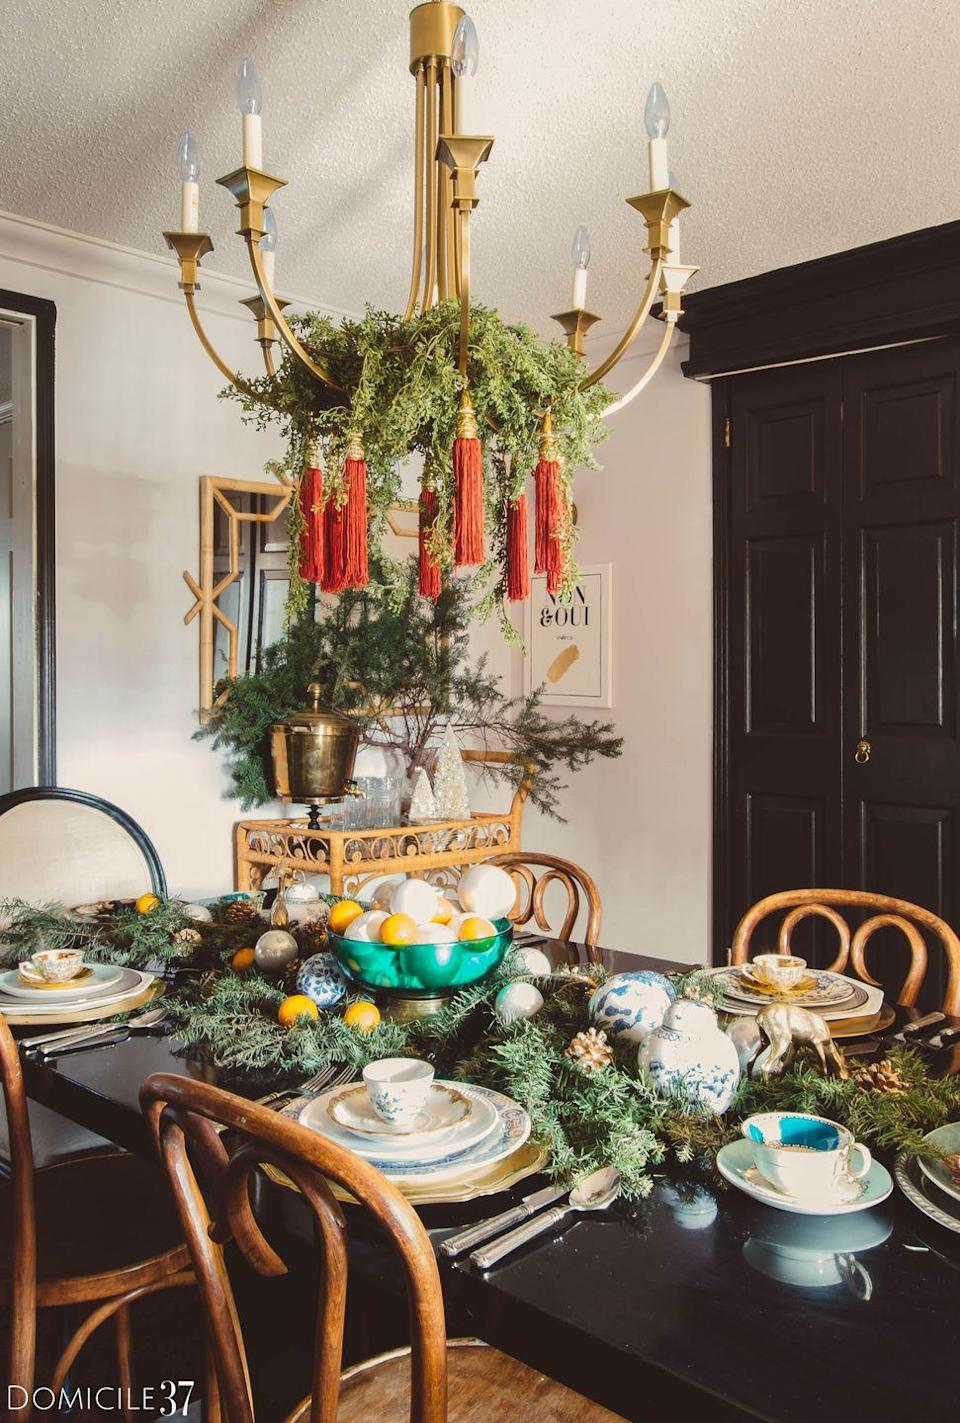 "<p>Your Christmas centerpiece should be a reflection of the rest of your home decor. If you want to give your dining table a <a href=""https://www.elledecor.com/design-decorate/room-ideas/g10241076/bohemian-room-decor/"" rel=""nofollow noopener"" target=""_blank"" data-ylk=""slk:bohemian"" class=""link rapid-noclick-resp"">bohemian</a> flair, experiment with texture. With leafy greens, tassels, and smooth ornaments, this tablescape option packs in the holiday cheer.</p><p><em><a href=""https://www.domicile37.com/orange-christmas-tablescape/"" rel=""nofollow noopener"" target=""_blank"" data-ylk=""slk:Via Domicile 37"" class=""link rapid-noclick-resp"">Via Domicile 37 </a></em></p>"